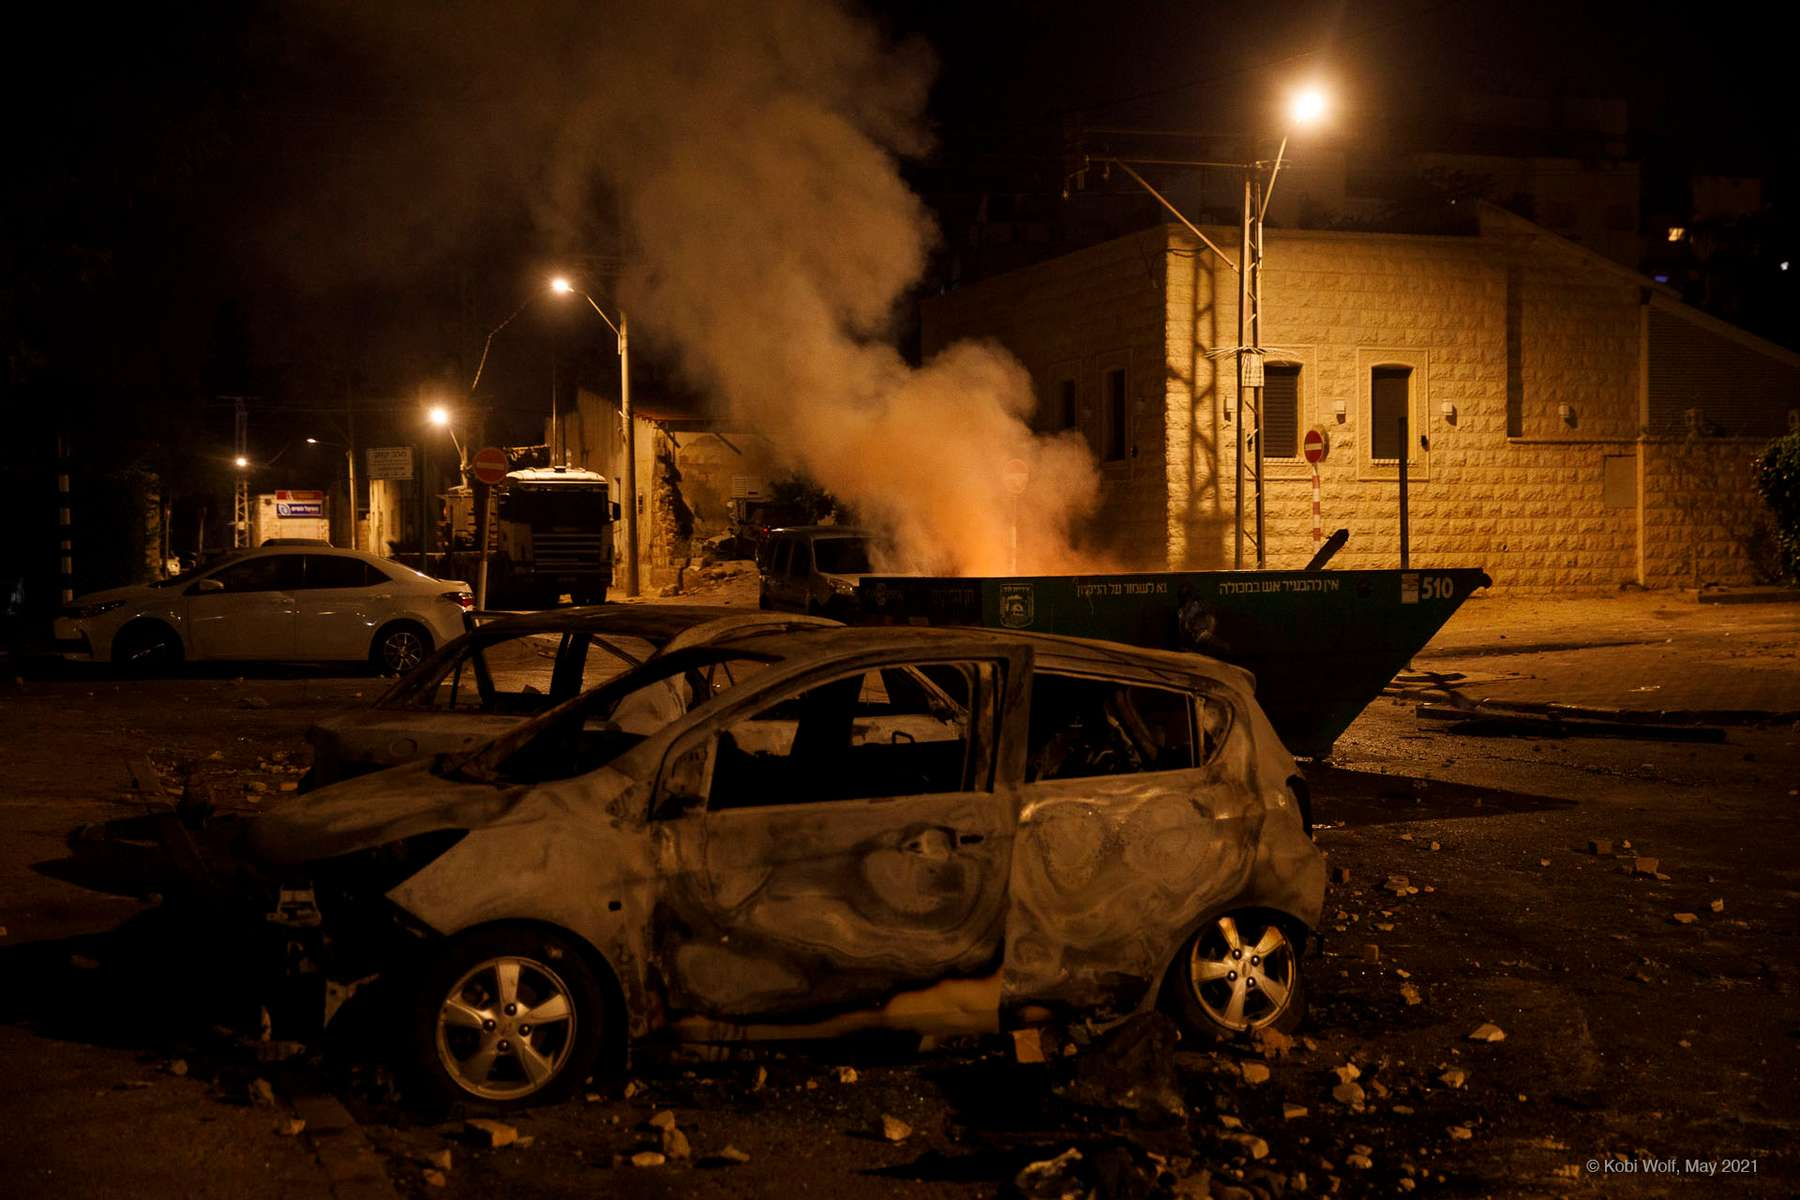 Burned cars during a riot in  Lod during a riot in the Lod,central Israel, Thursday, May 13, 2021 photographer: Kobi Wolf